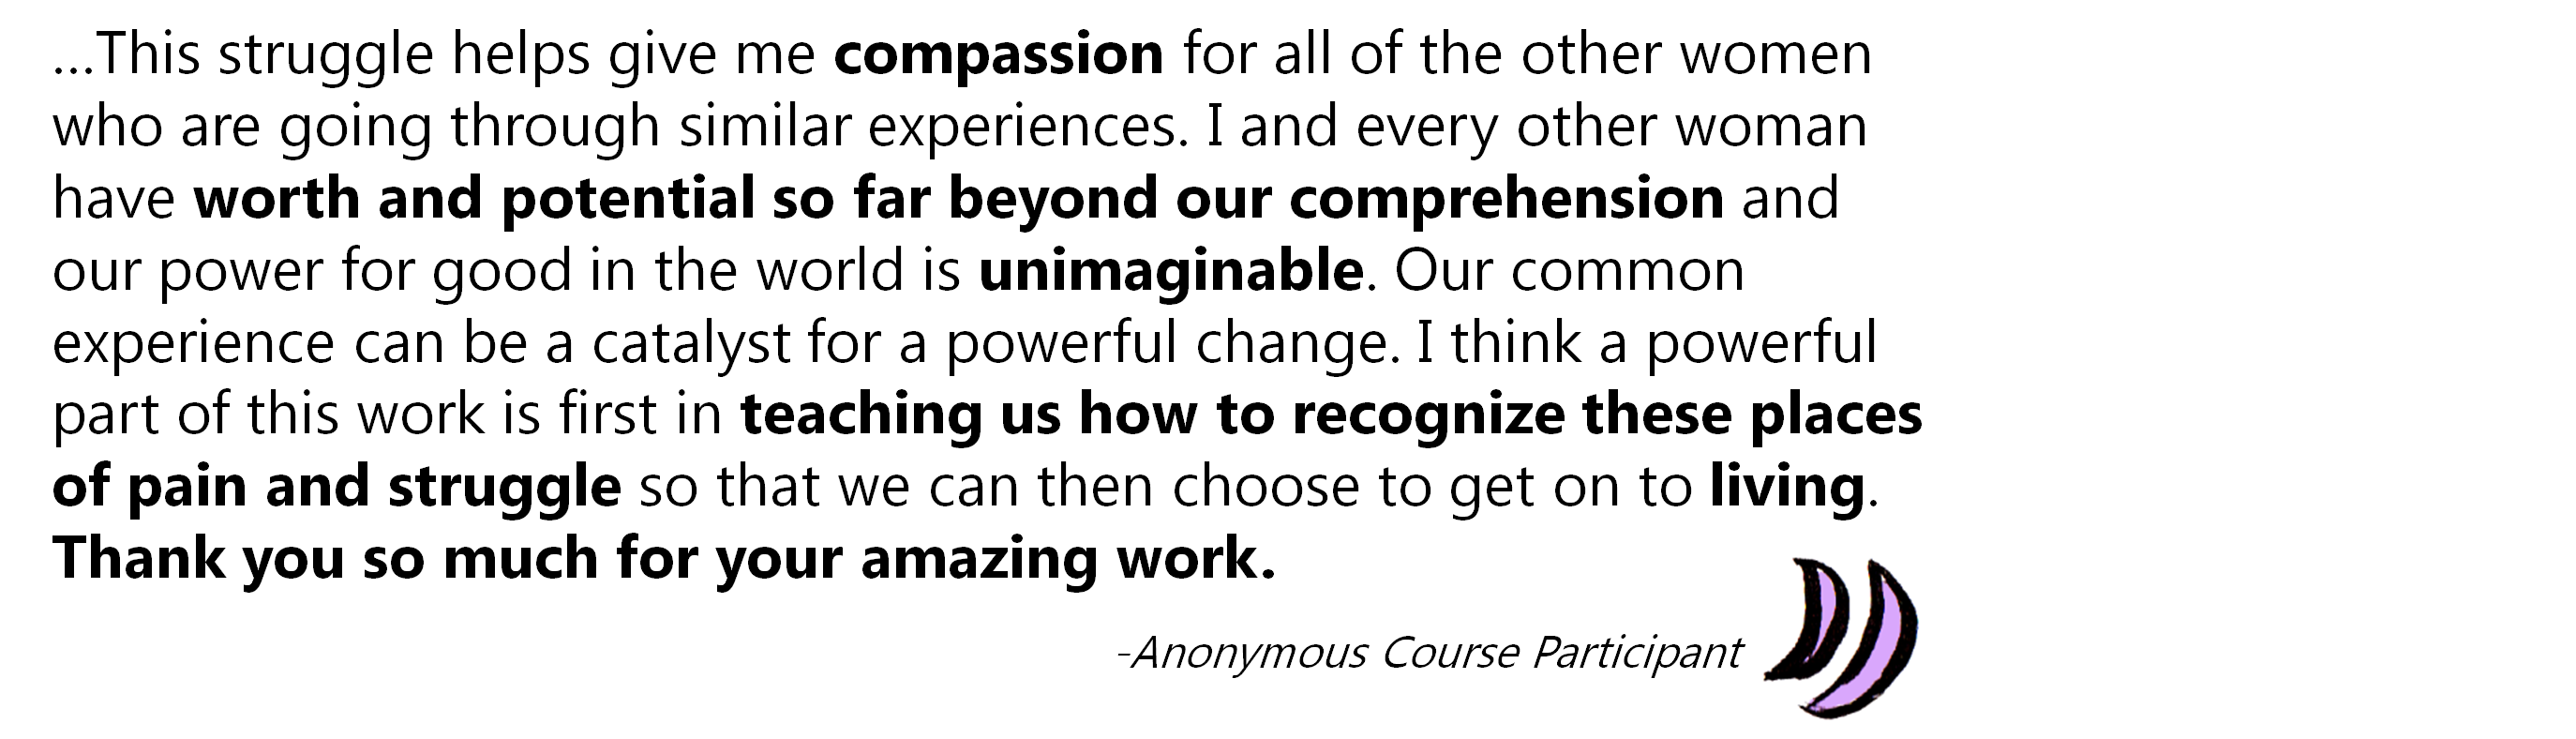 …This struggle helps give me compassion for all of the other women who are going through similar experiences. I and every other woman have worth and potential so far beyond our comprehension and our power for good in the world is unimaginable. Our common experience can be a catalyst for a powerful change. I think a powerful part of this work is first in teaching us how to recognize these places of pain and struggle so that we can then choose to get on to living. Thank you so much for your amazing work.